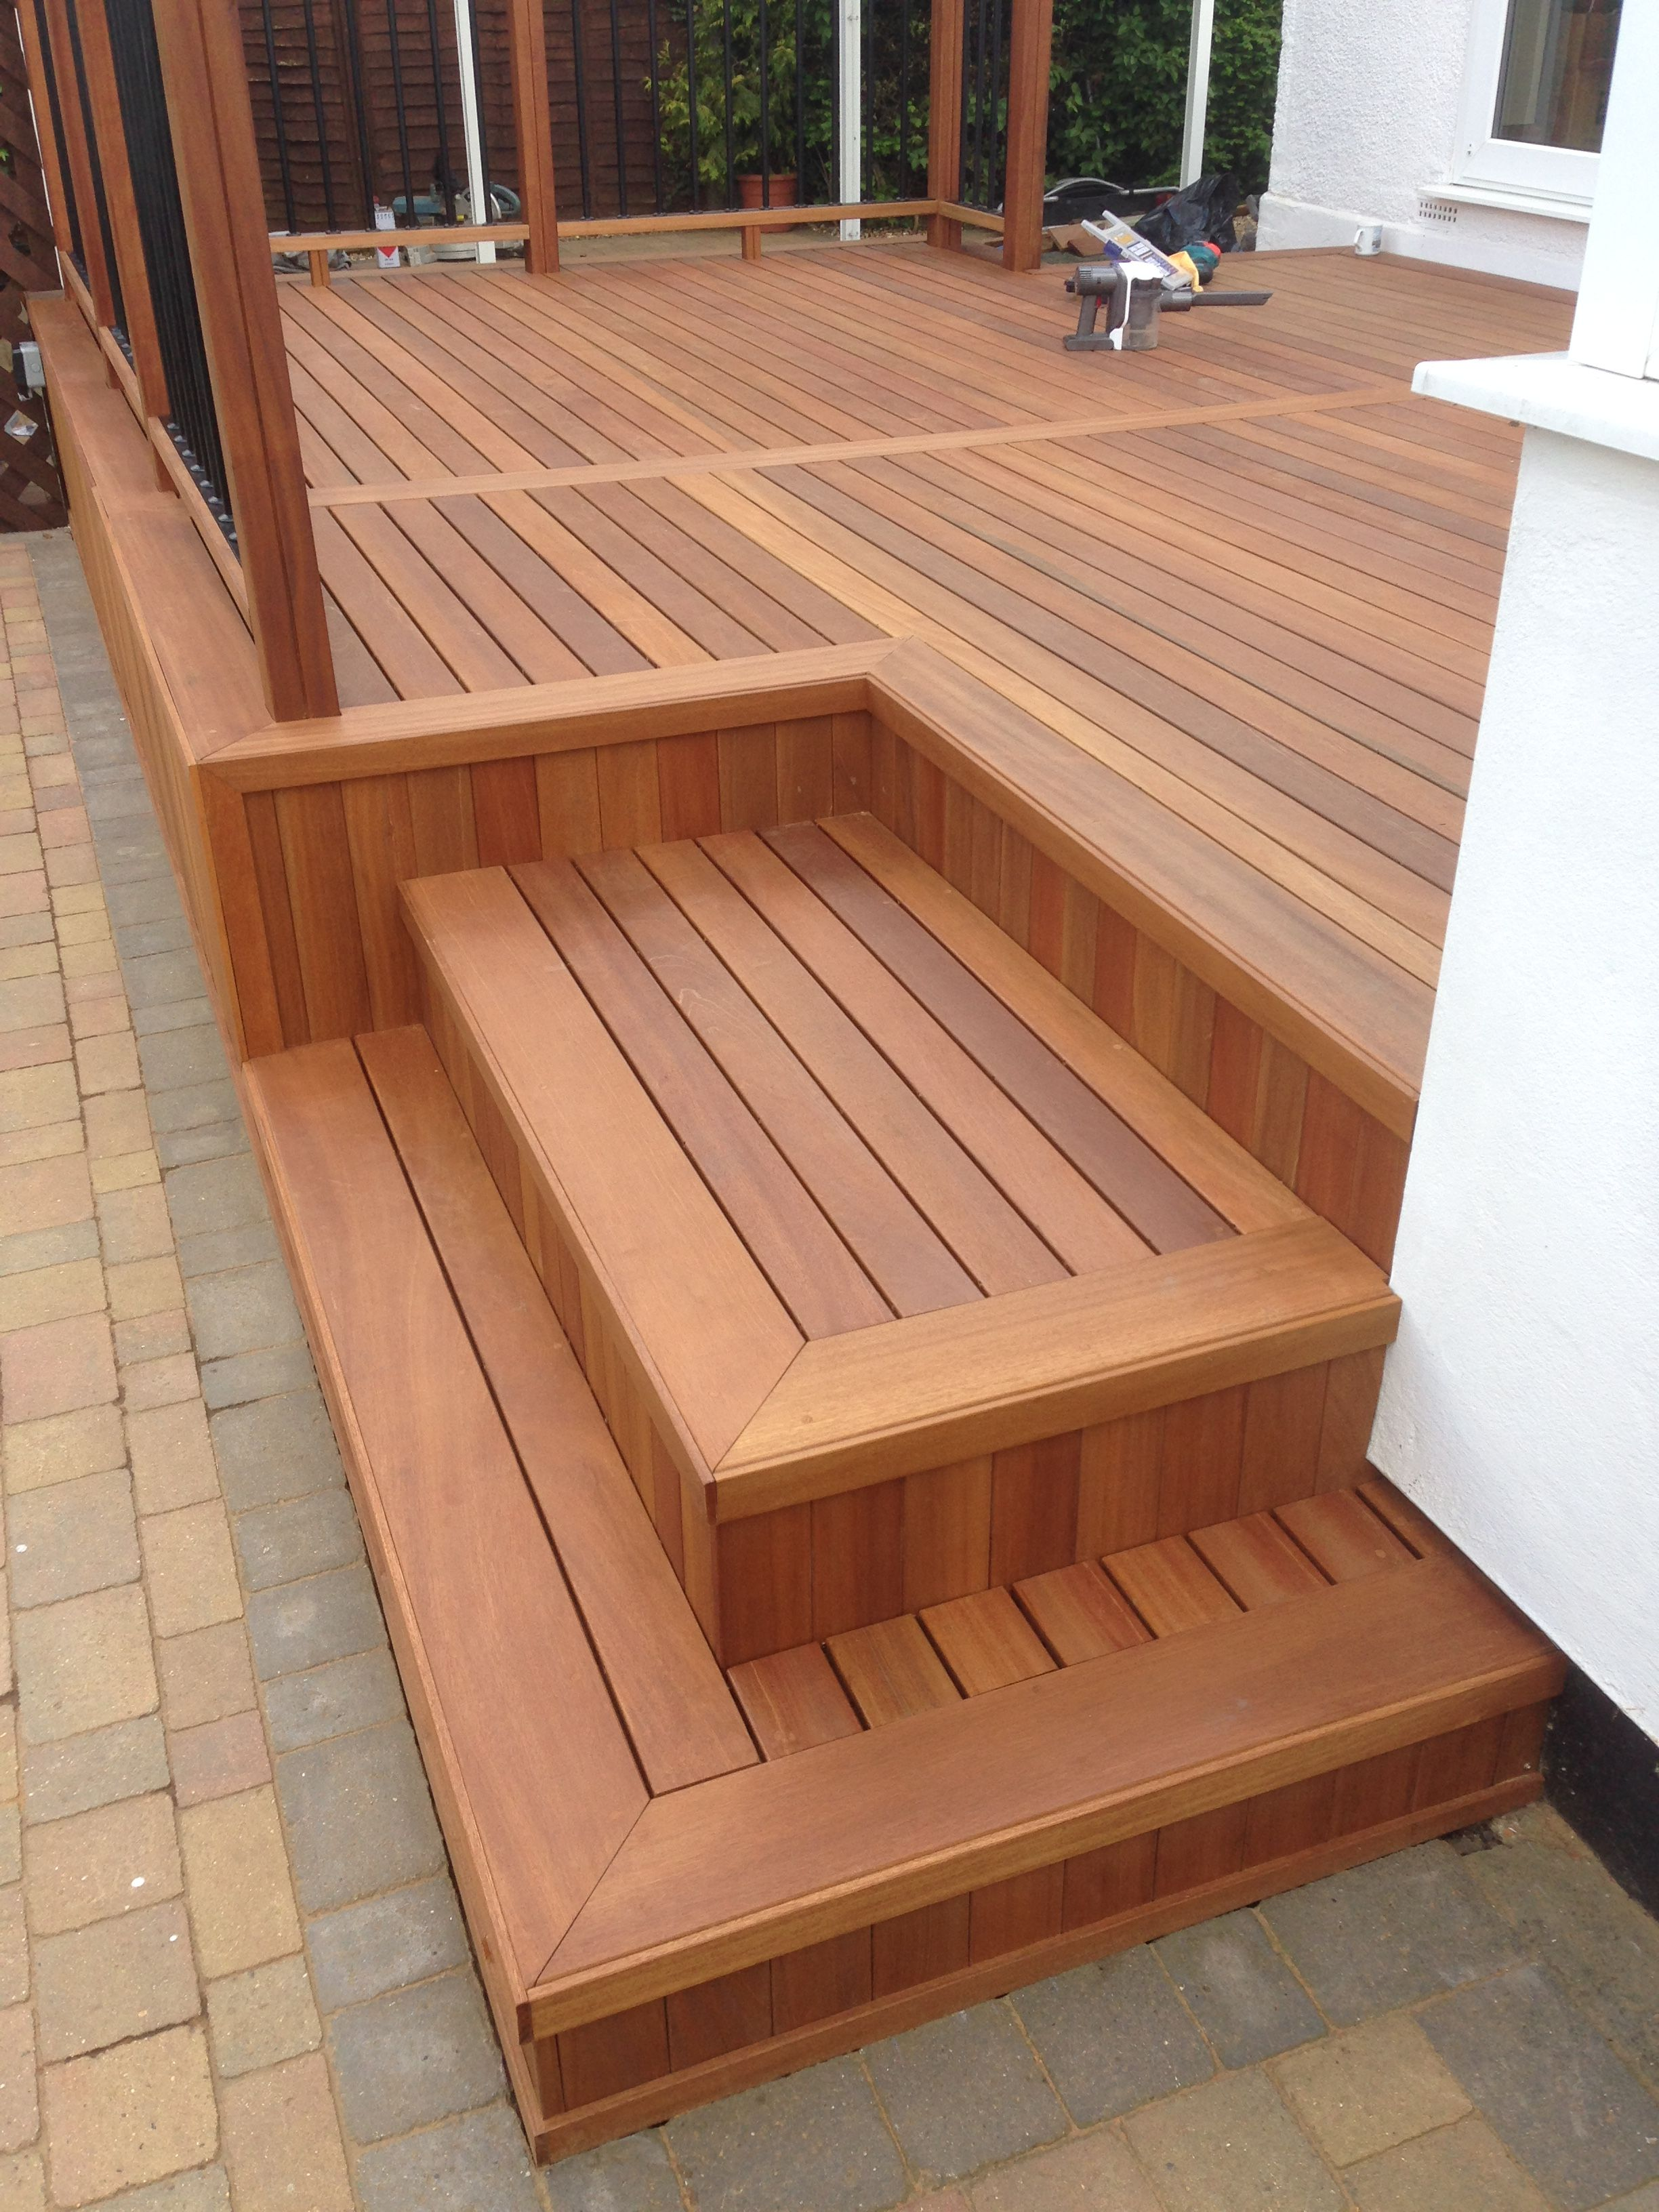 Yellow Balau Deck And Steps Corner Of Steps Trimmed With 10 X 50mm Yellow Balau Wood Deck Designs Deck Design Diy Deck